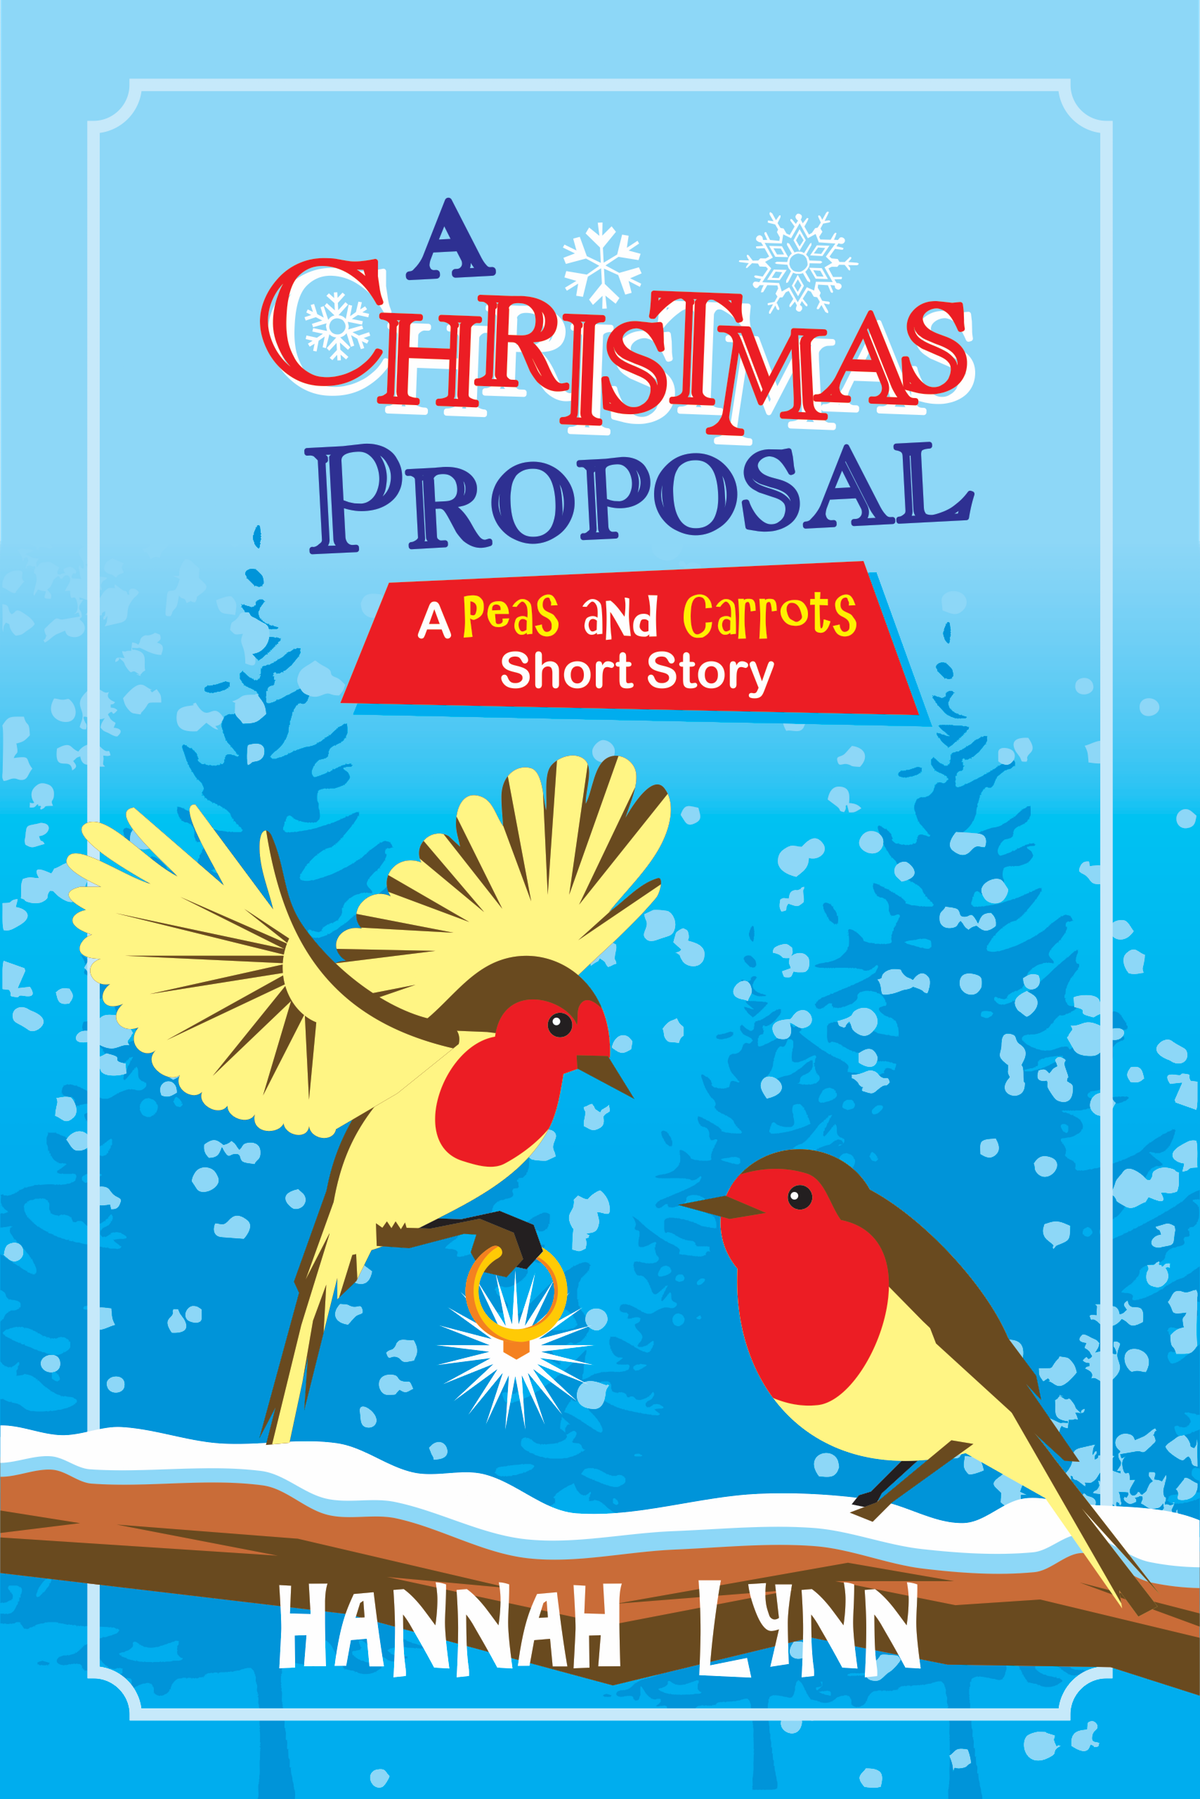 A Christmas Proposal: A Peas and Carrots Short Story